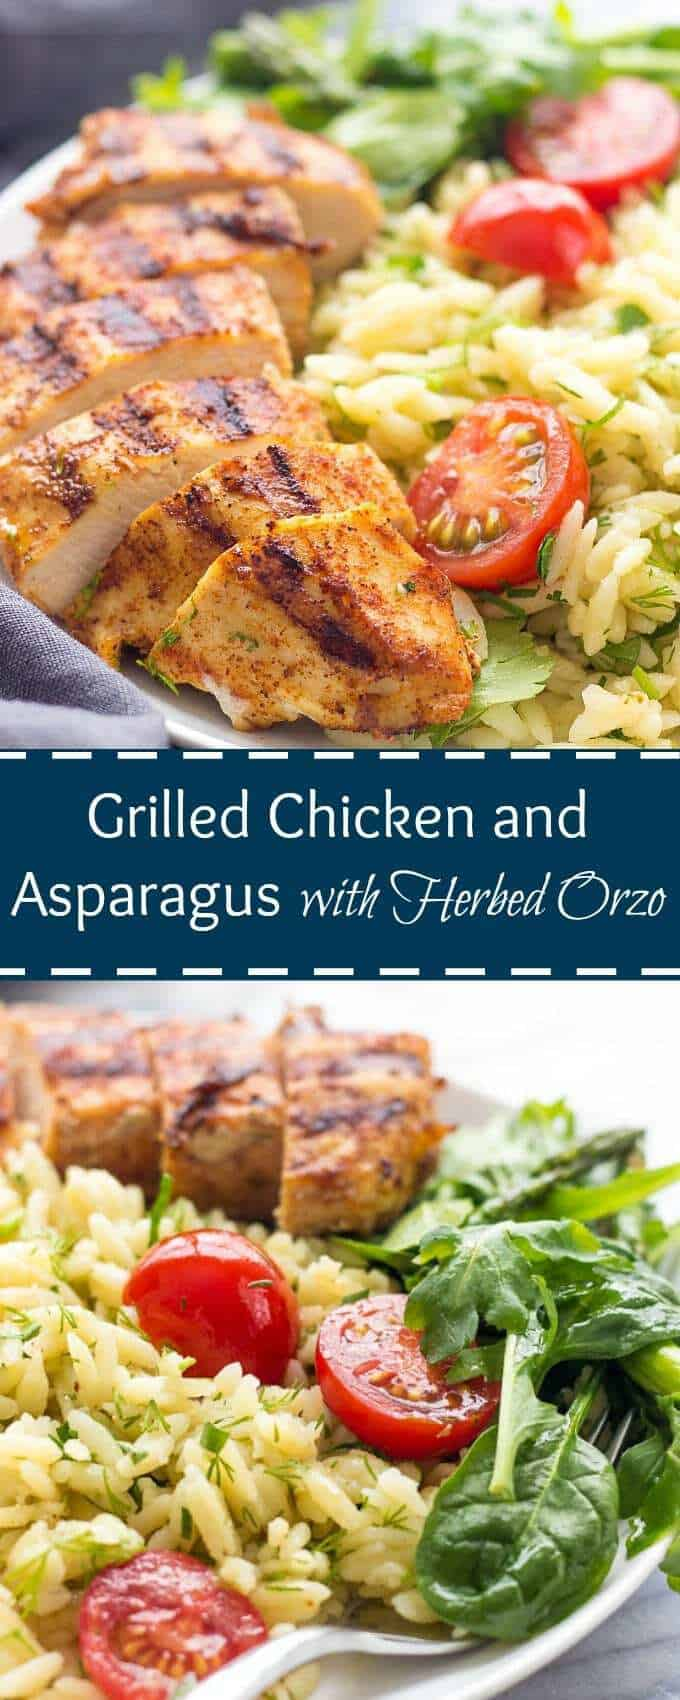 Grilled Chicken and Asparagus with Herbed Orzo is healthy and delicious weeknight meal made in under 30 minutes. Flavor and satisfaction are guaranteed.